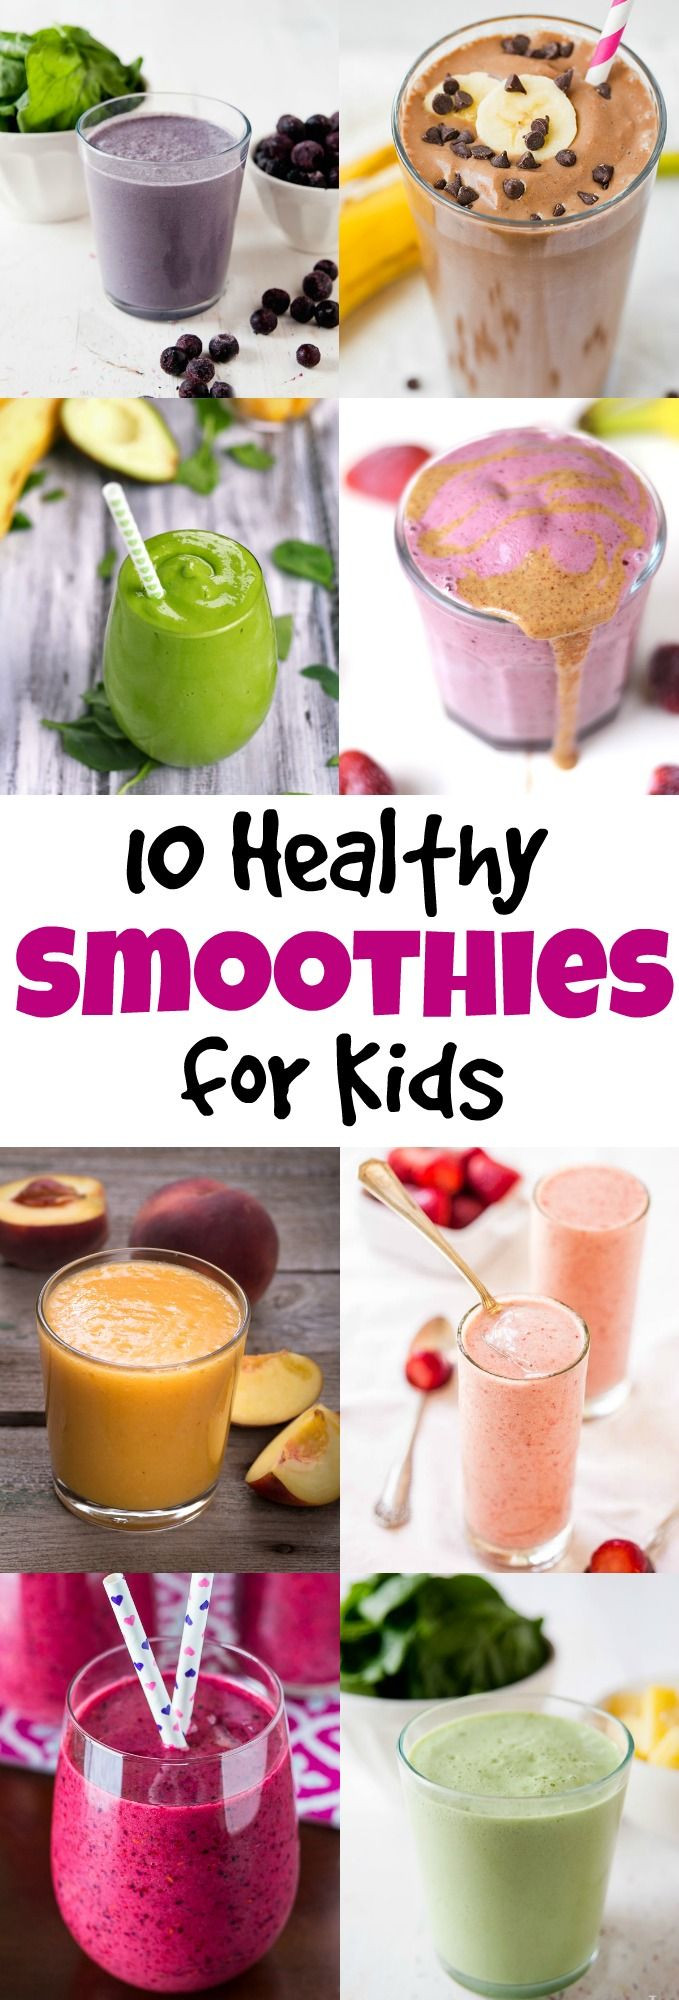 Healthy Smoothies For Dinner  10 Healthy Smoothies for Kids – MOMables – Real Food